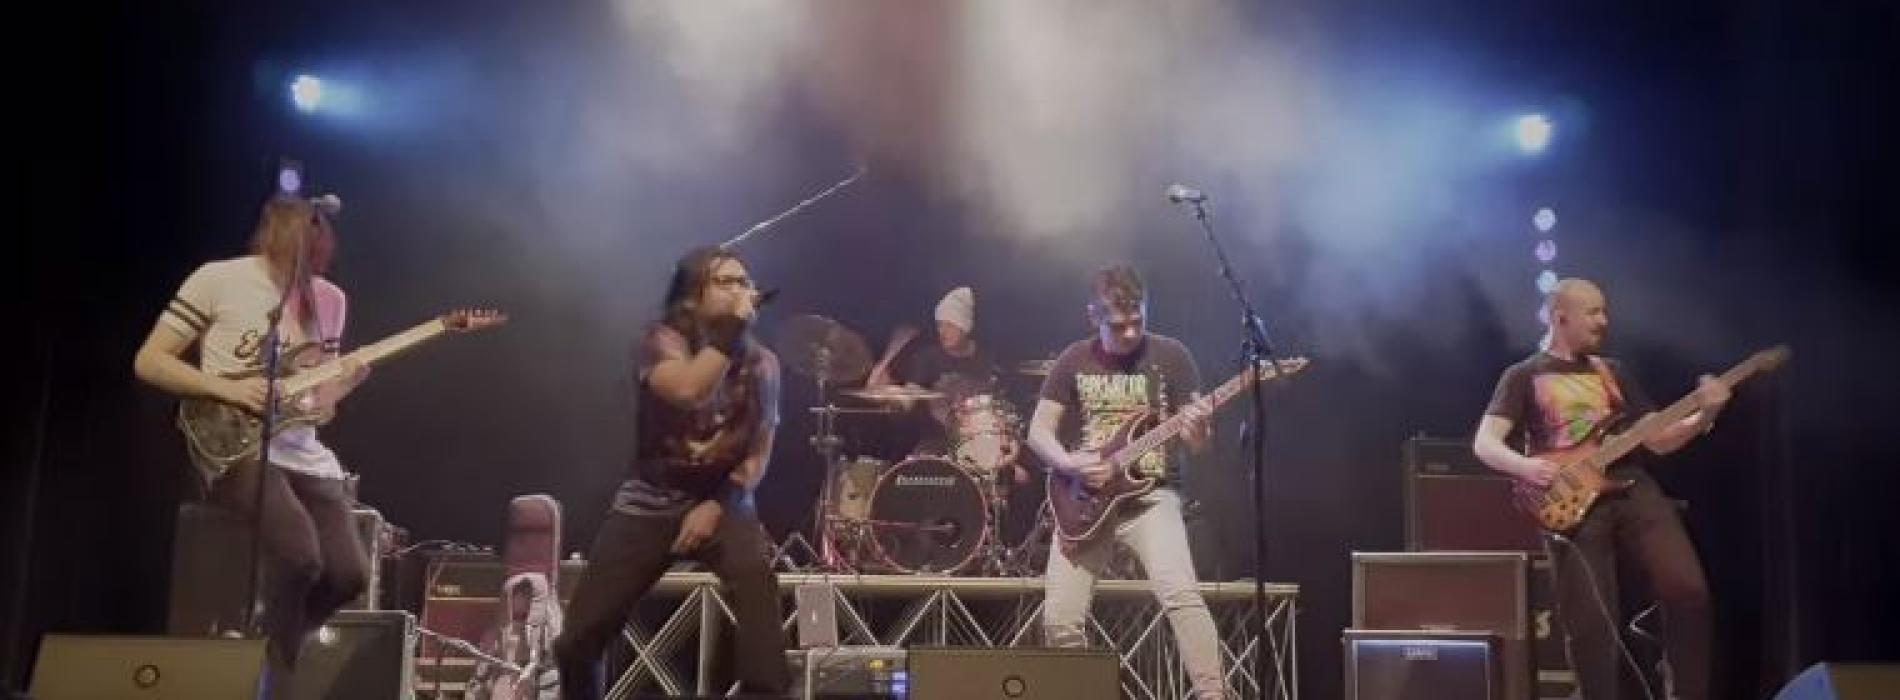 Far From Refuge – There Was A Light (Live)